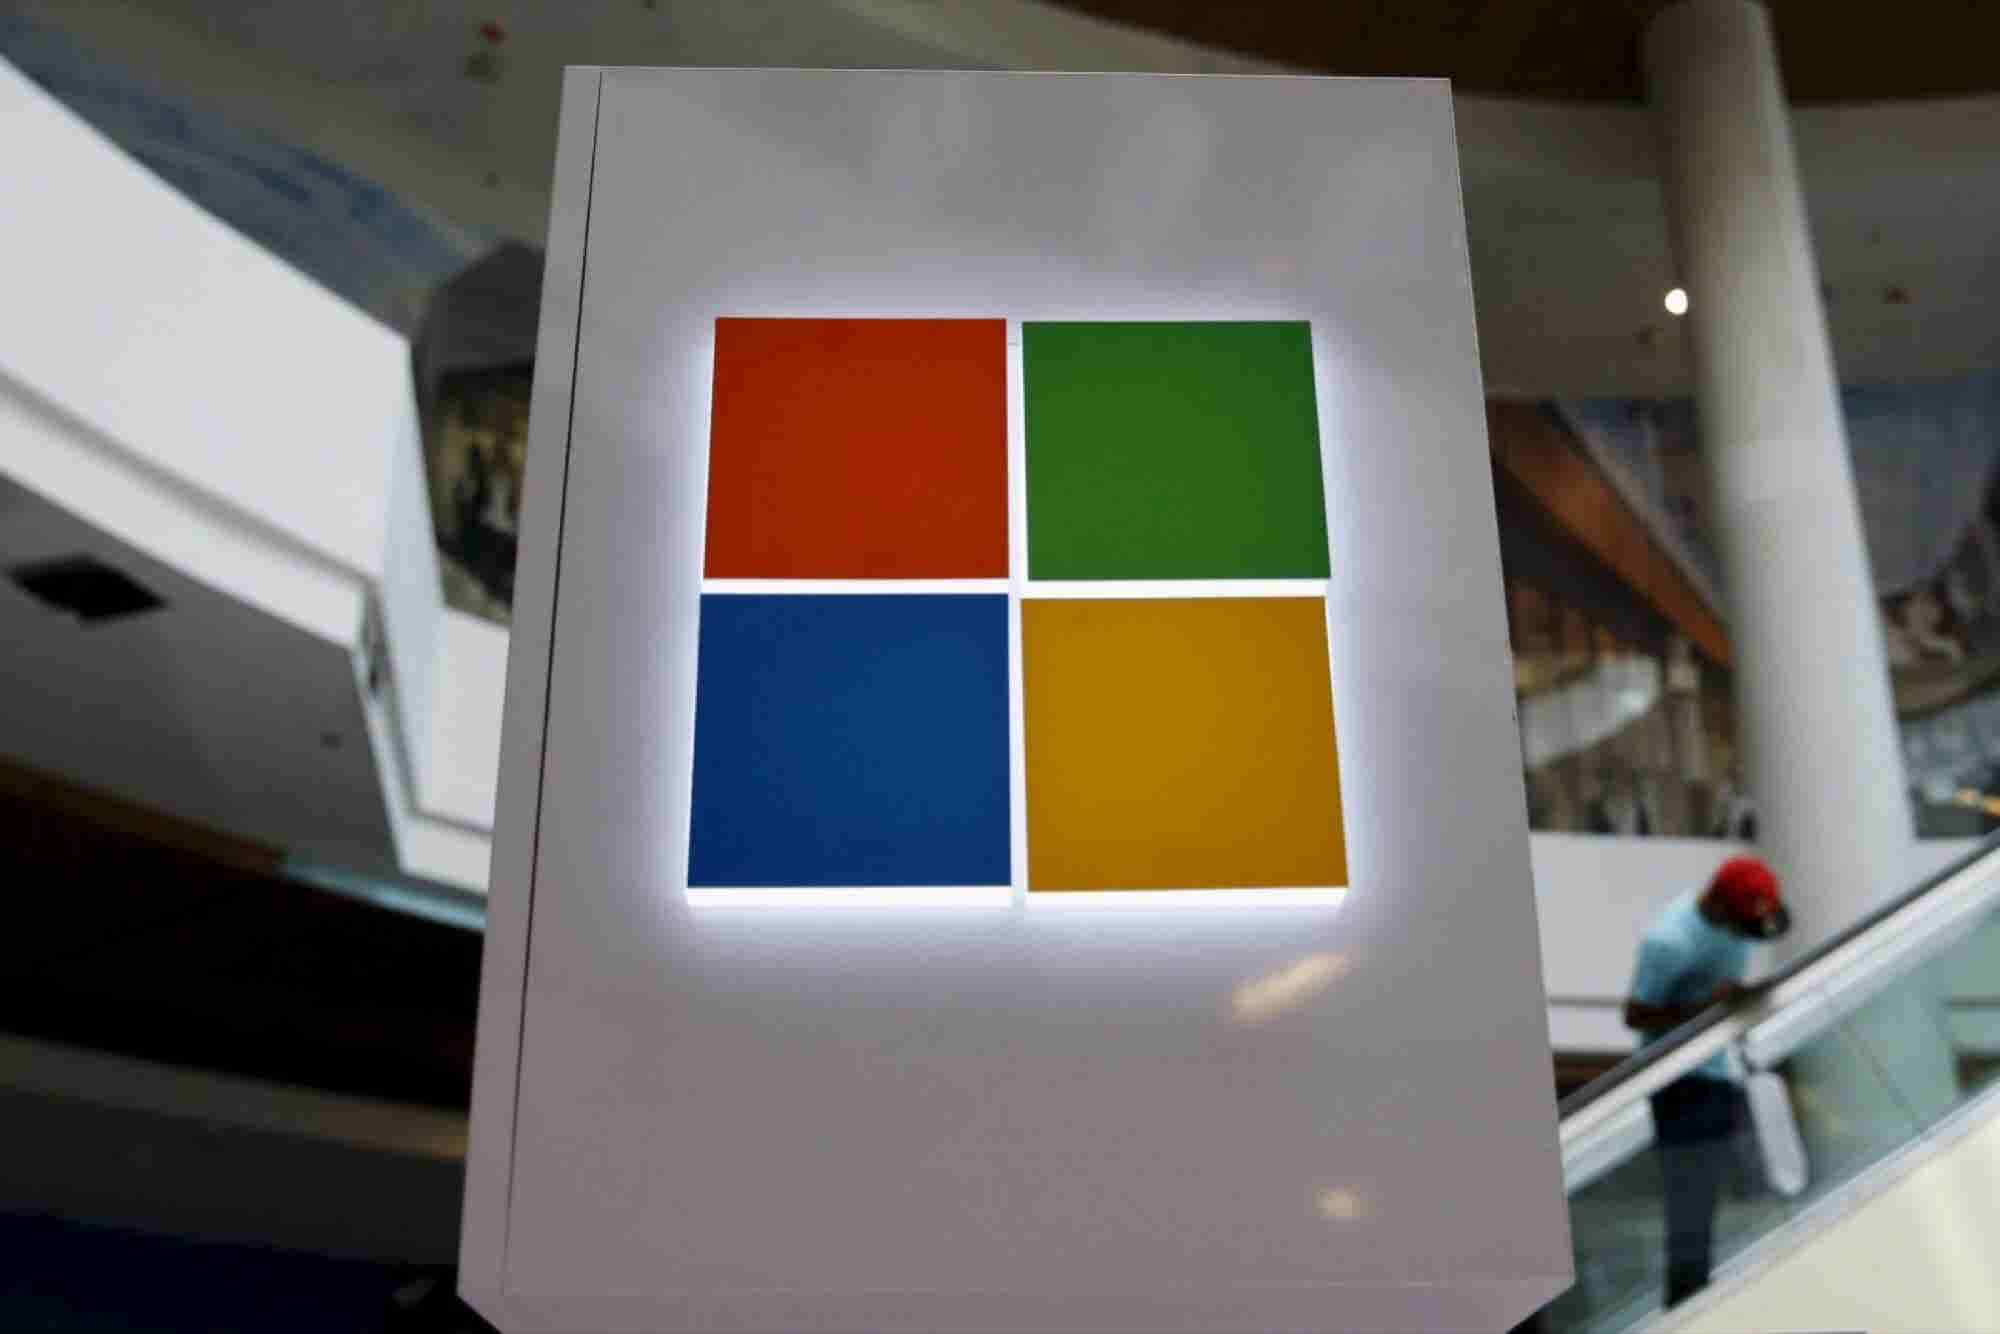 Microsoft Apologizes for Chatbot's Racist, Sexist Tweets